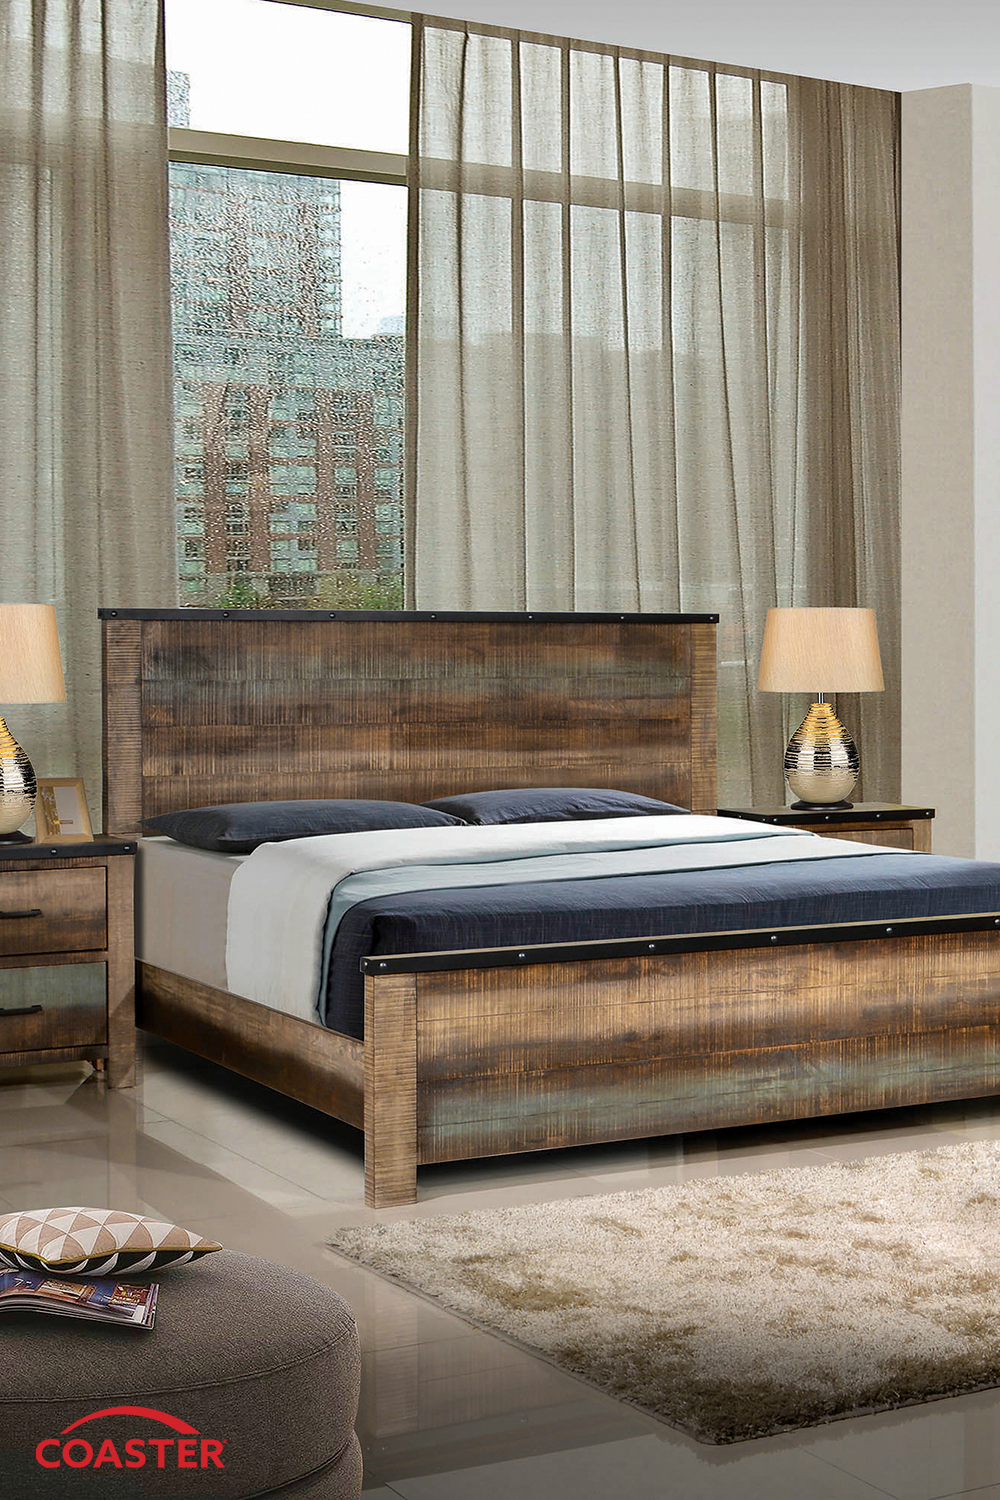 Coaster Fine Furniture's exclusive bed is perfect for fans